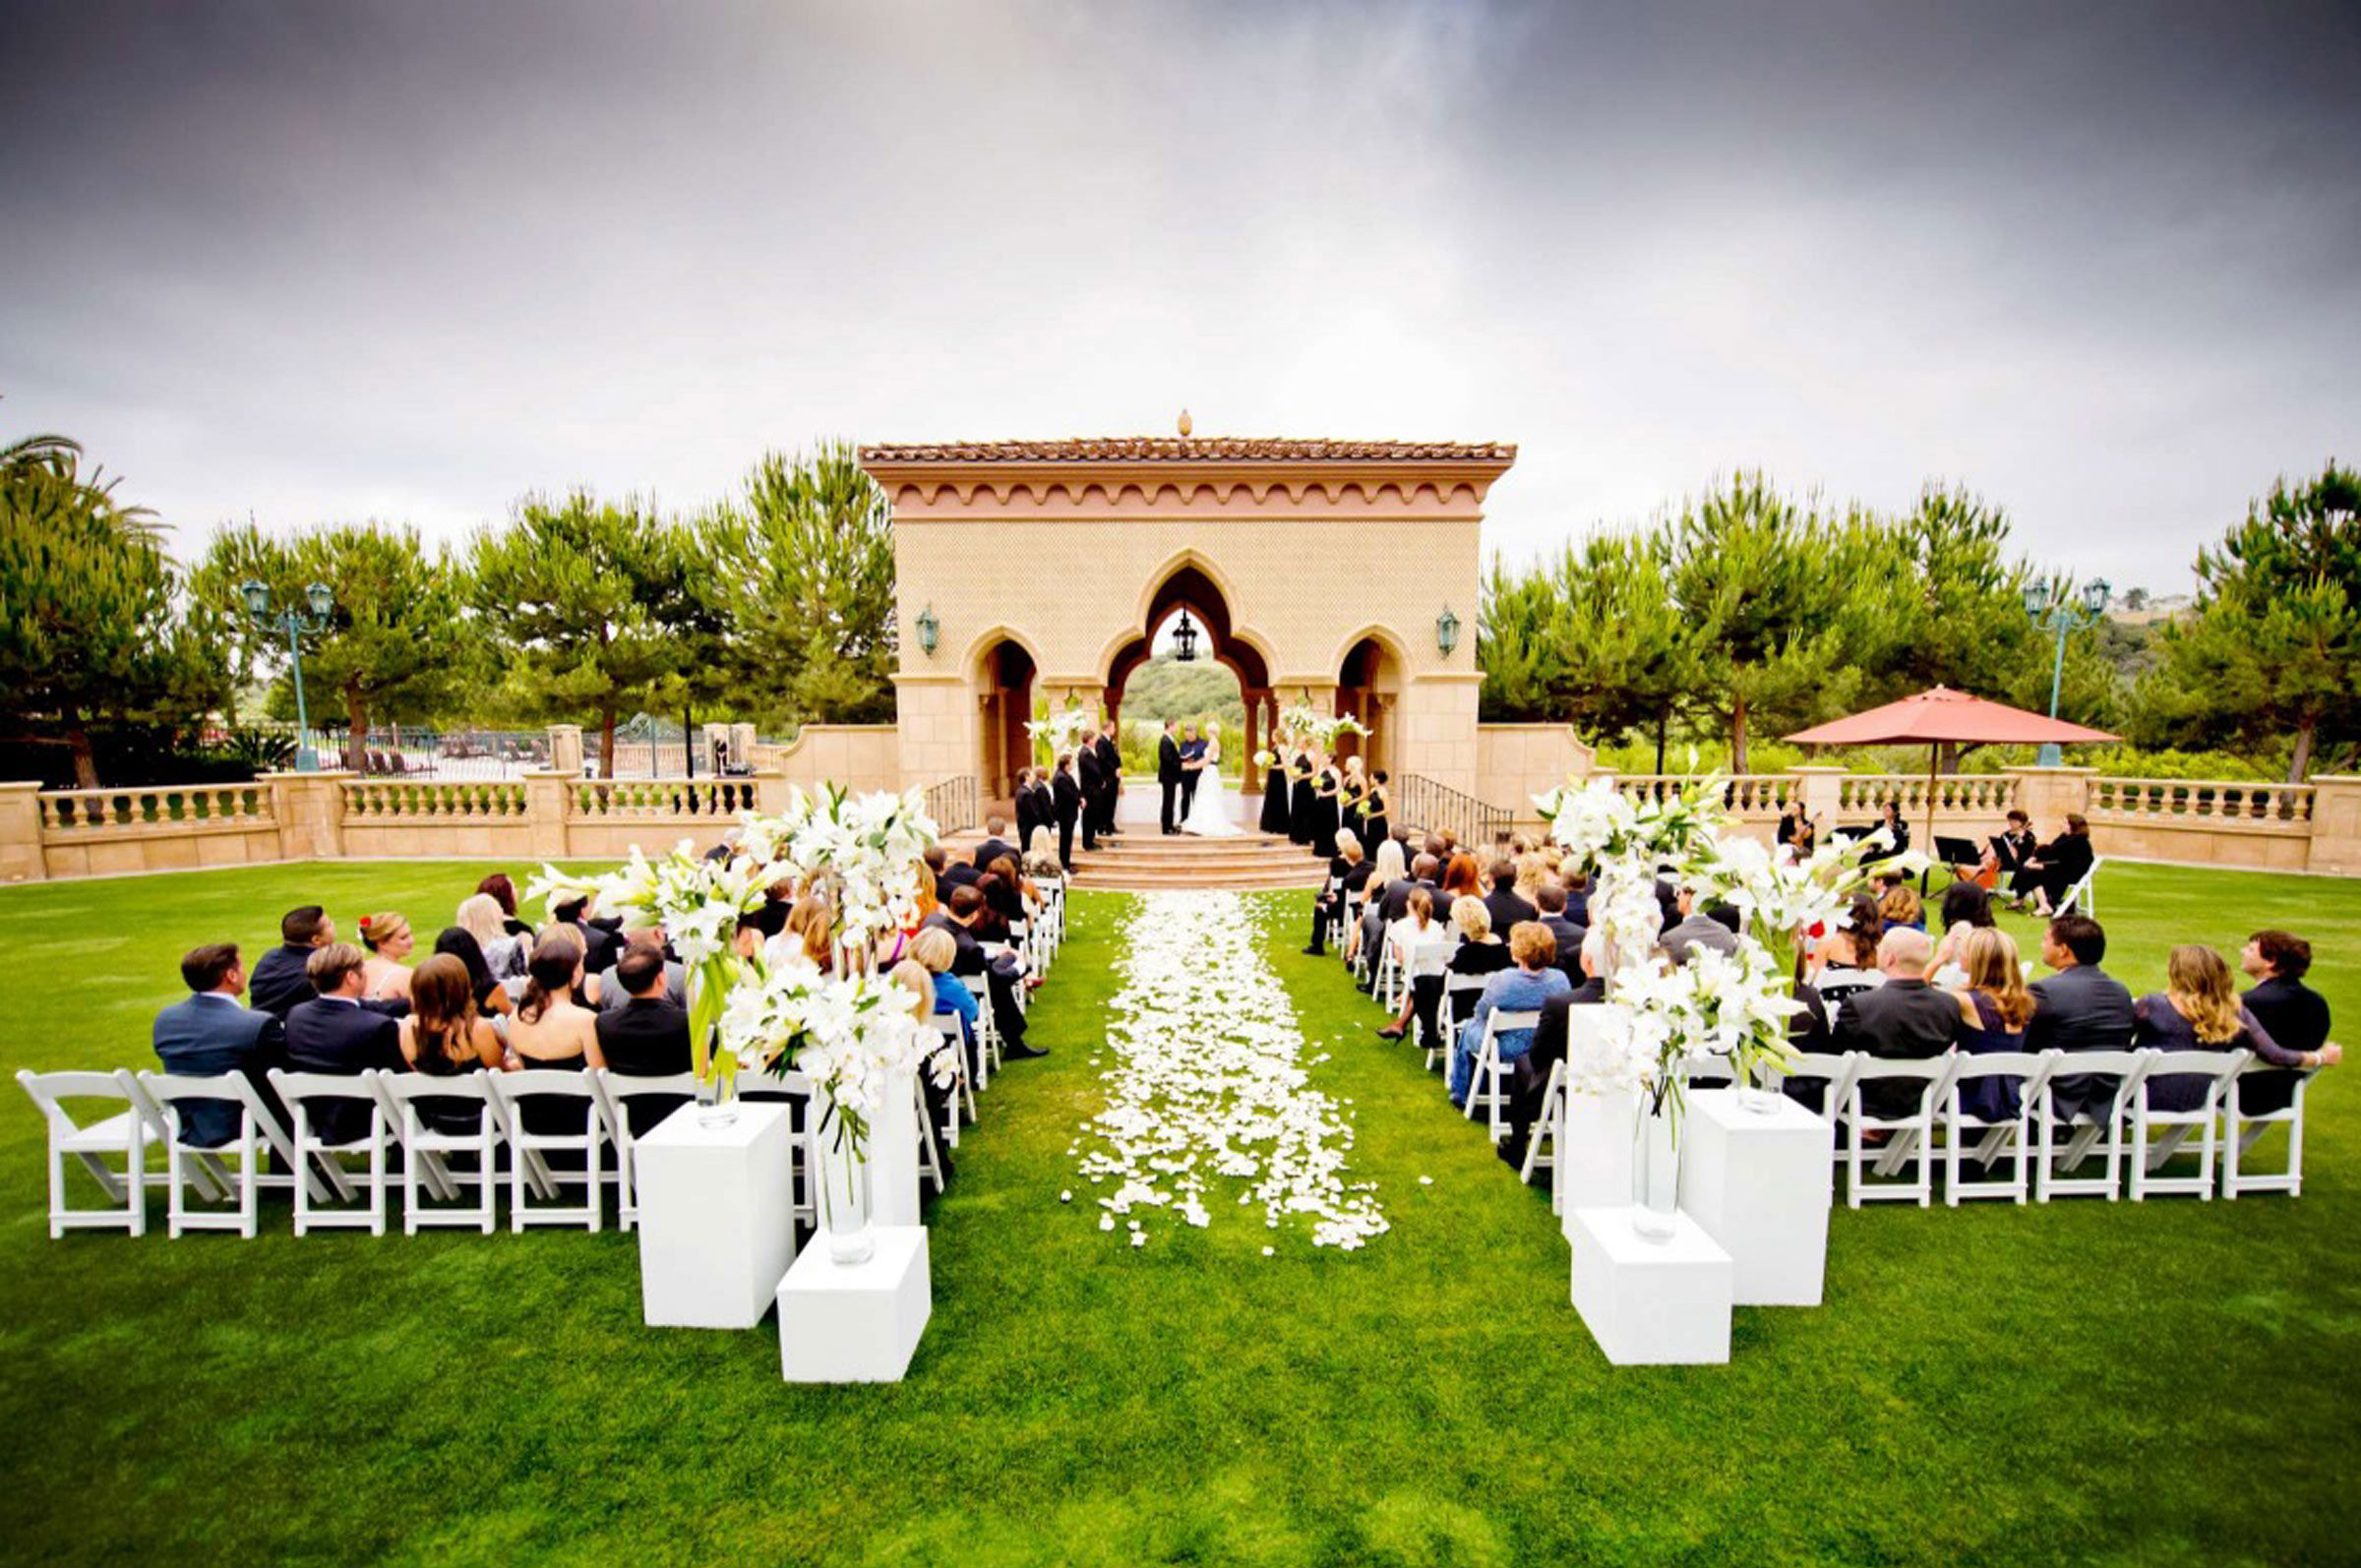 What Is The Average Cost For Wedding Venue